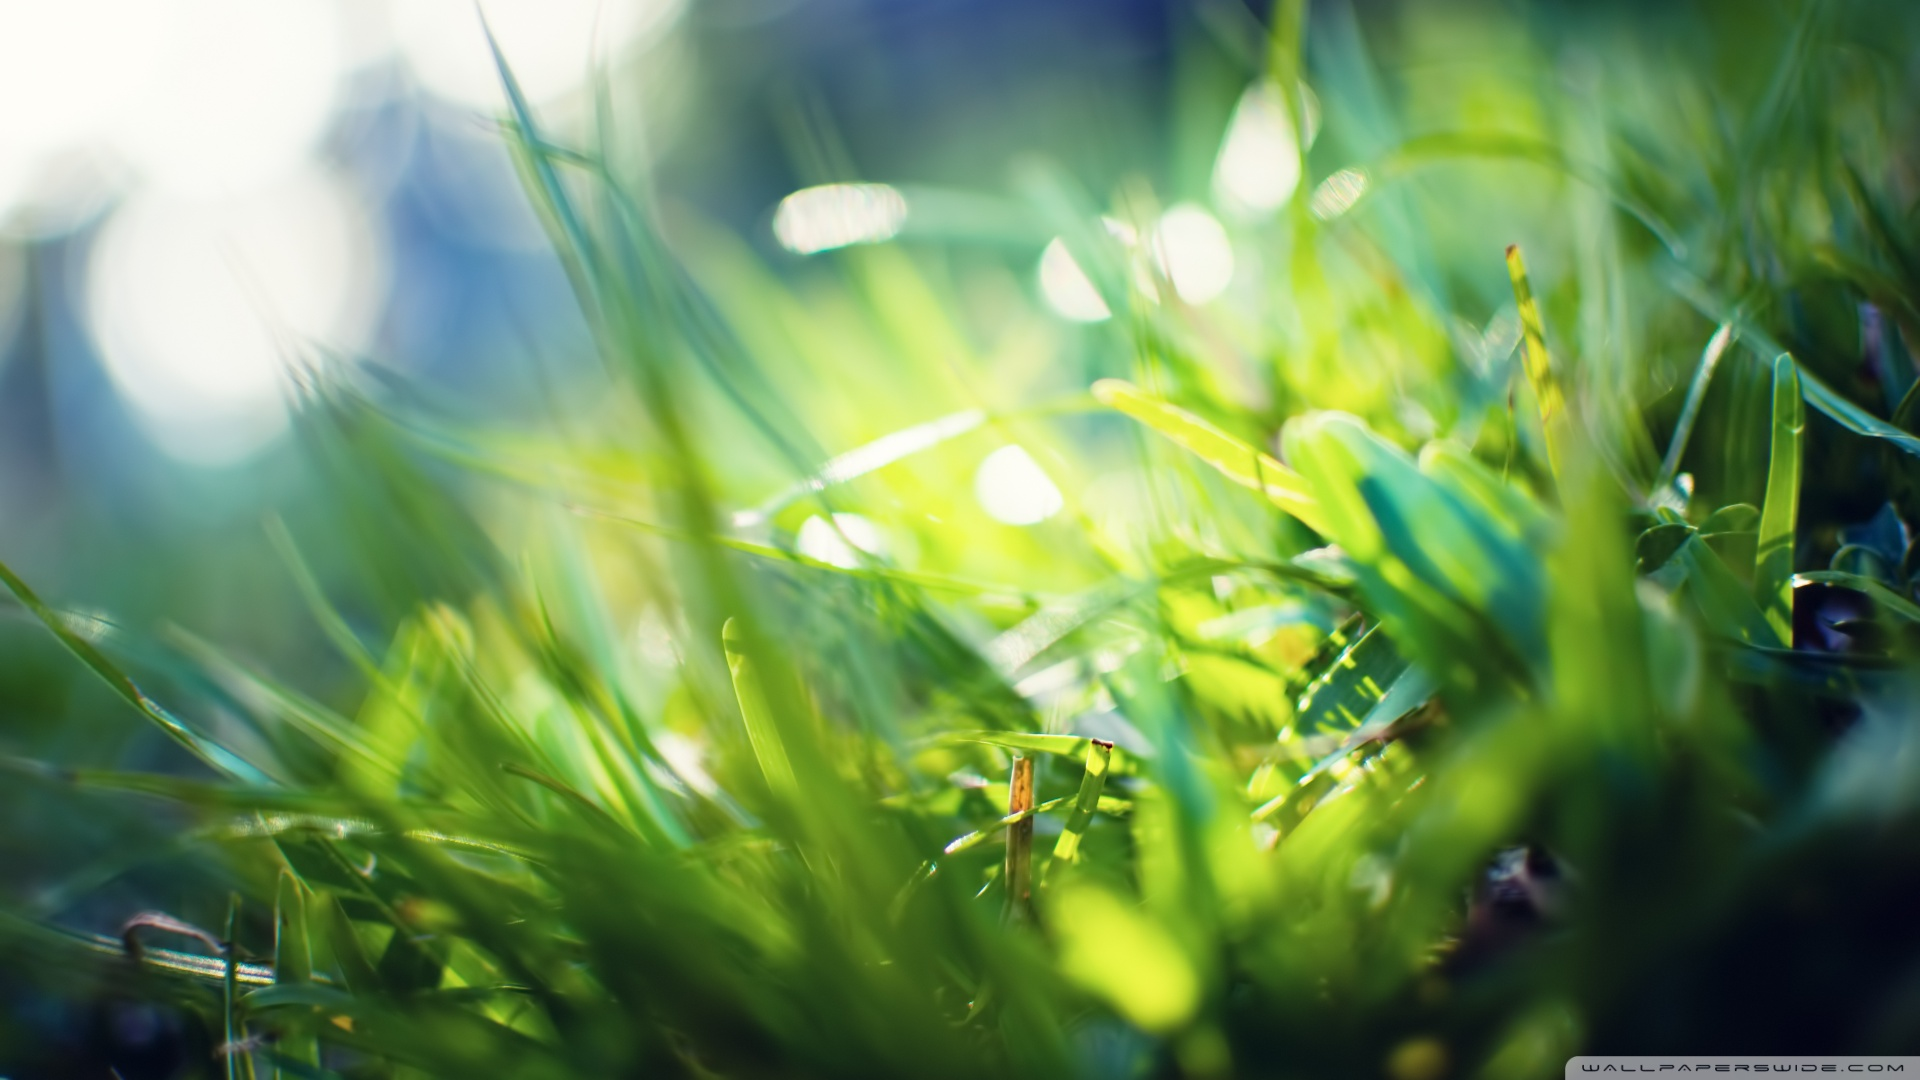 Grass Bokeh Pictures